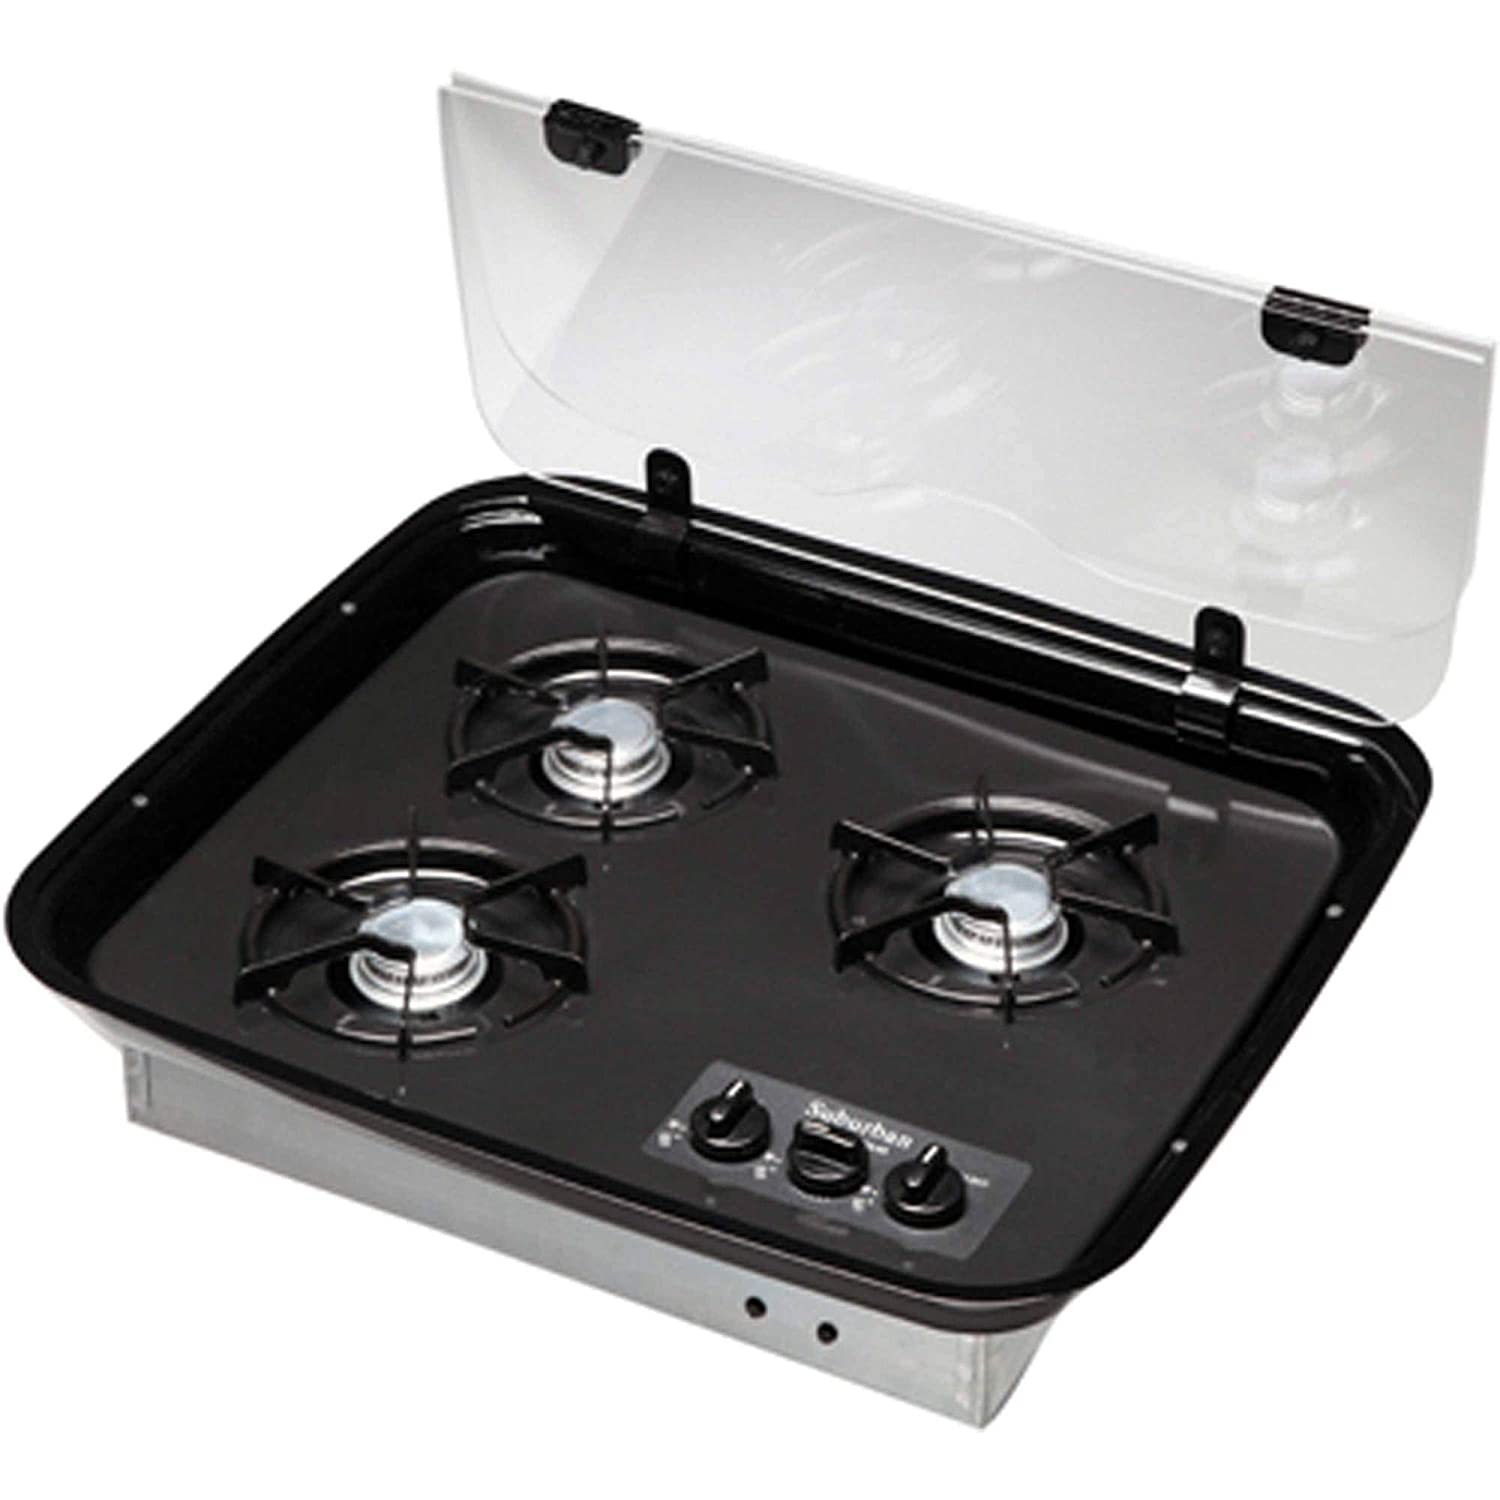 Suburban 2985A Glass Cooktop Cover - Slide-In Cooktops and Ranges